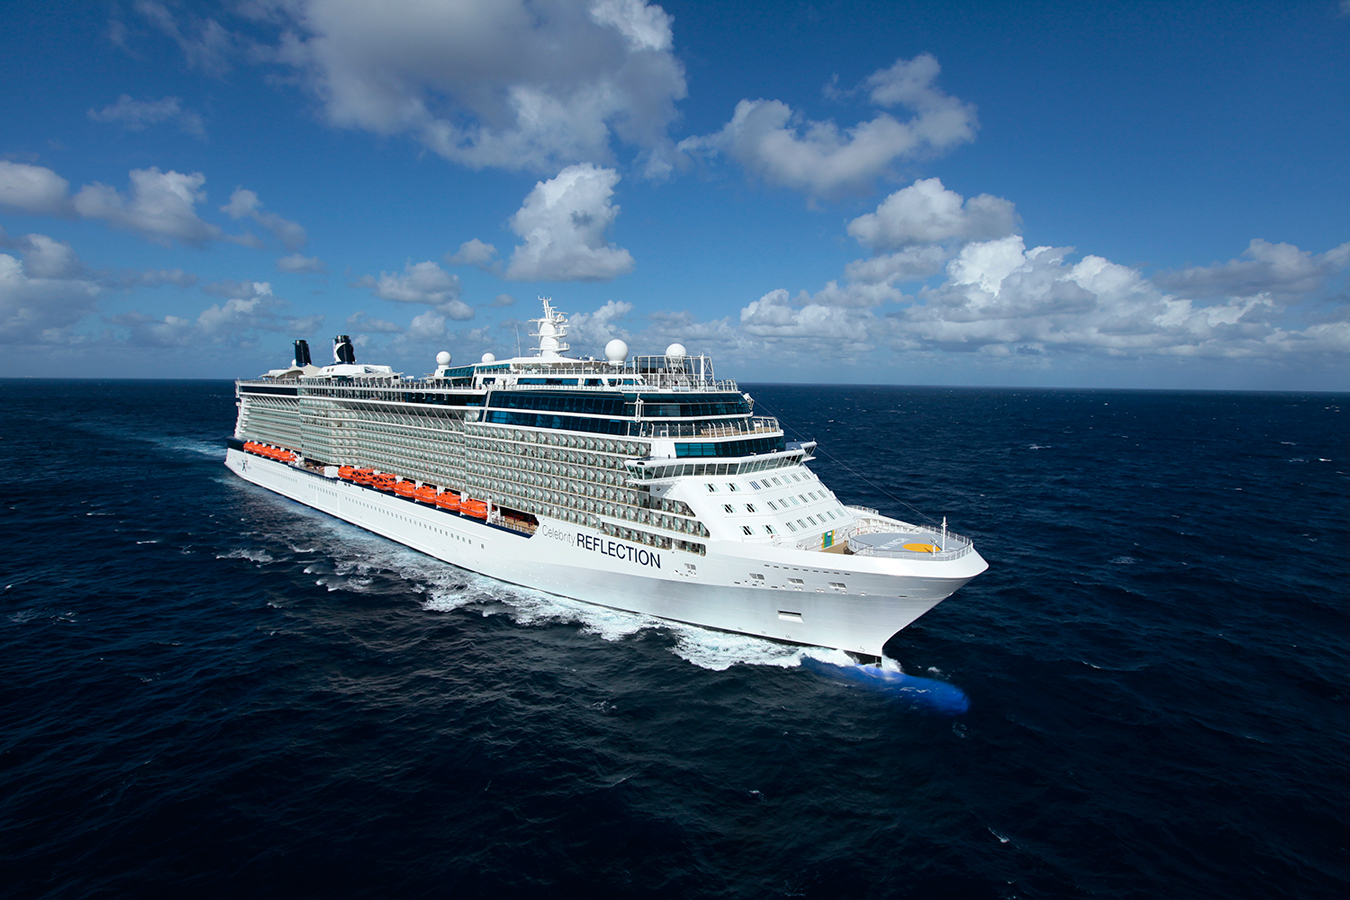 Celebrity Cruises Announces Itineraries For Europe Recommend - Celebrity eclipse cruise ship itinerary